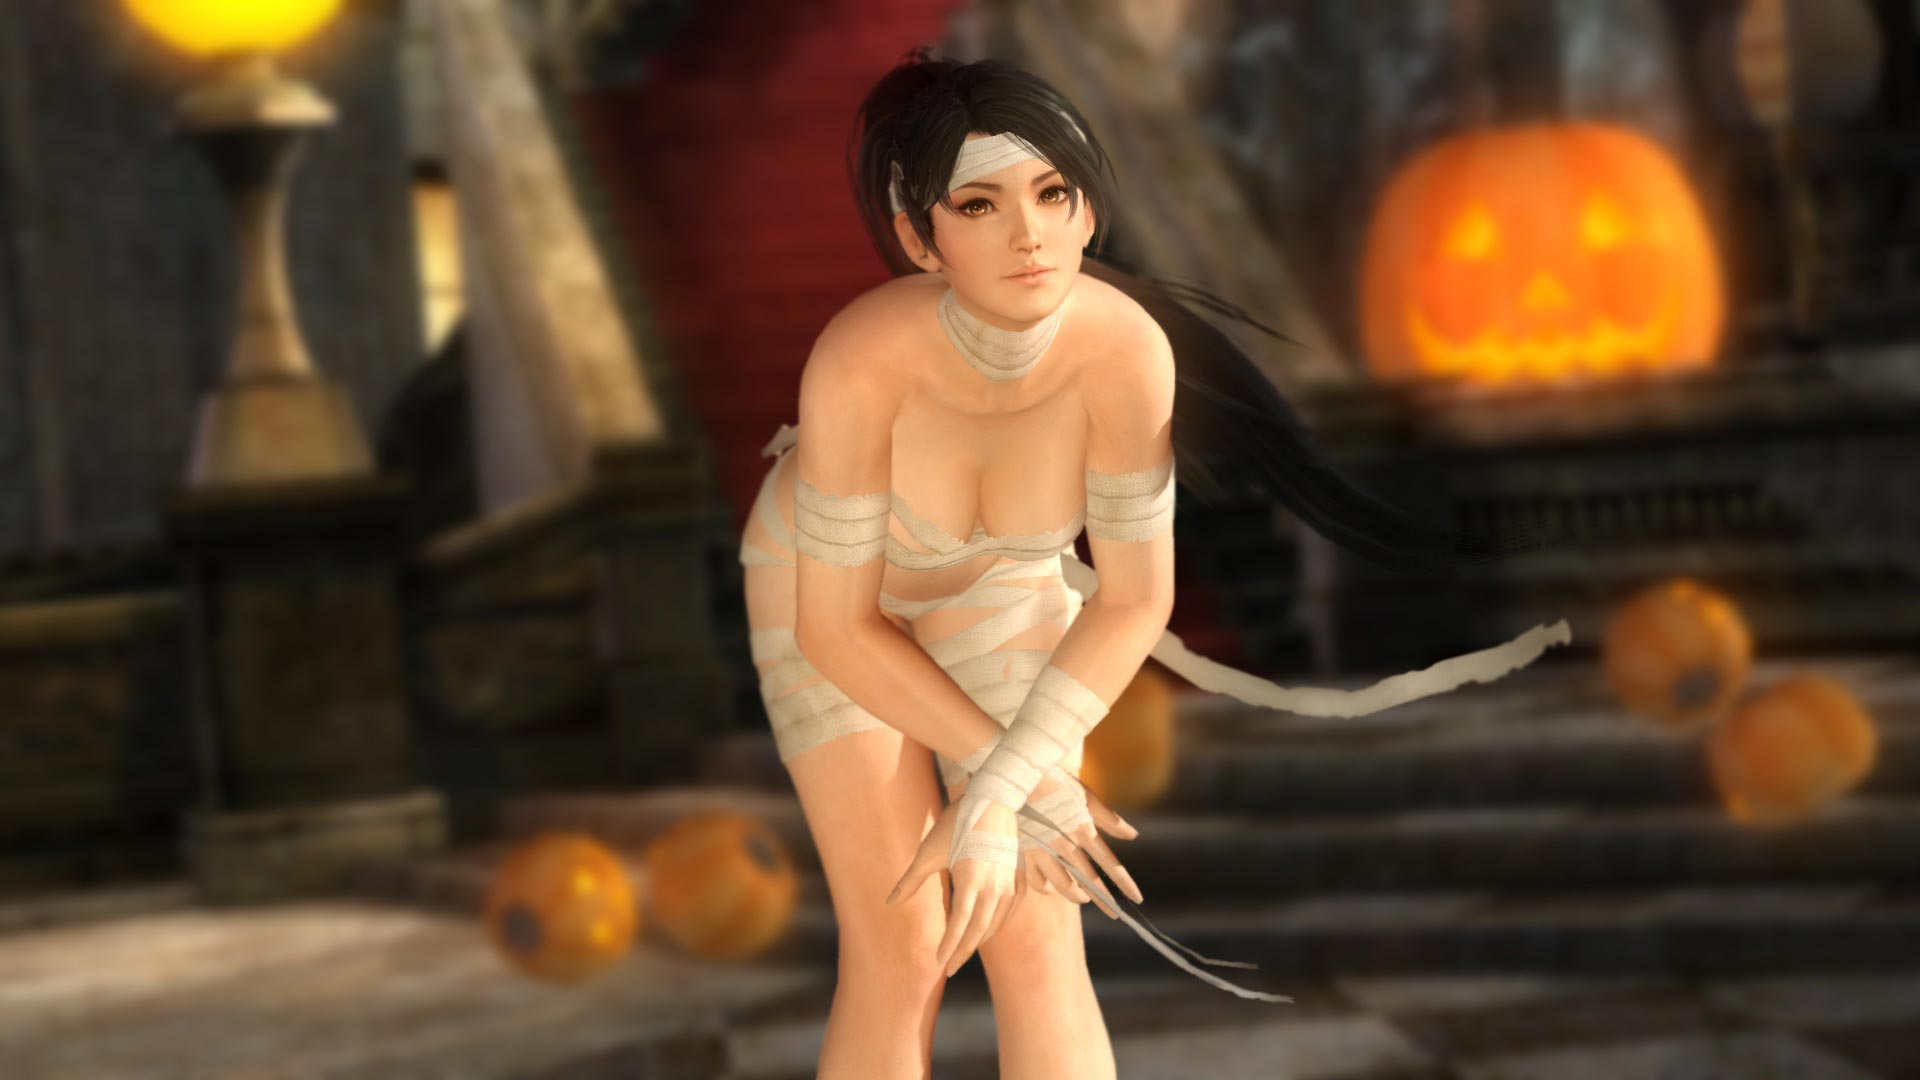 Sexy outfits in Dead or Alive 5 2 out of 3 image gallery